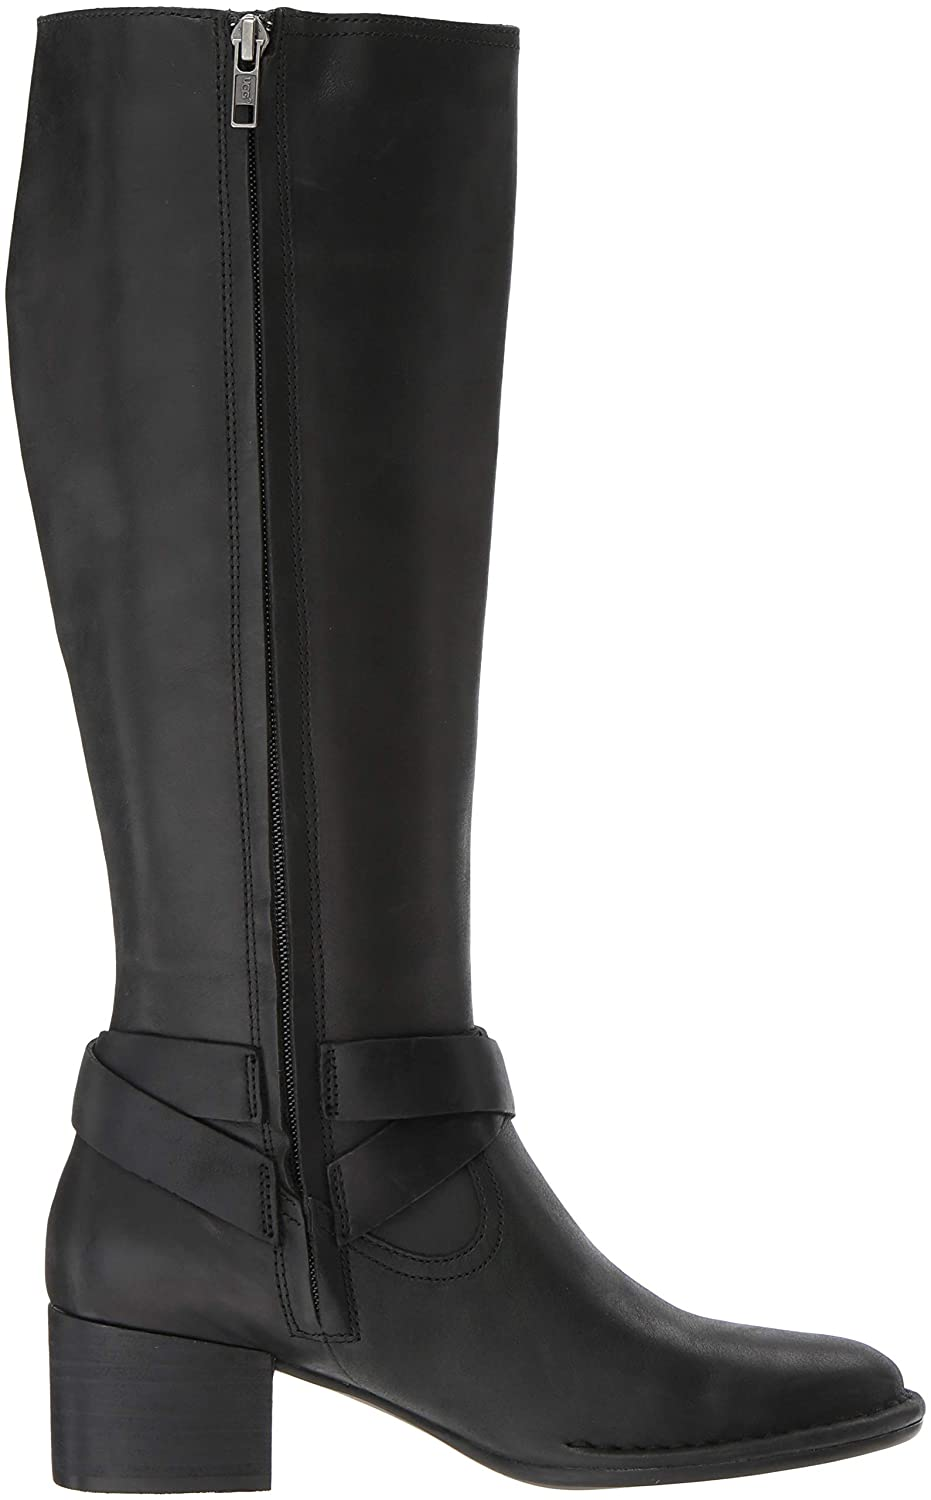 aff3f347d16 UGG Women's W Bandara Tall Fashion Boot